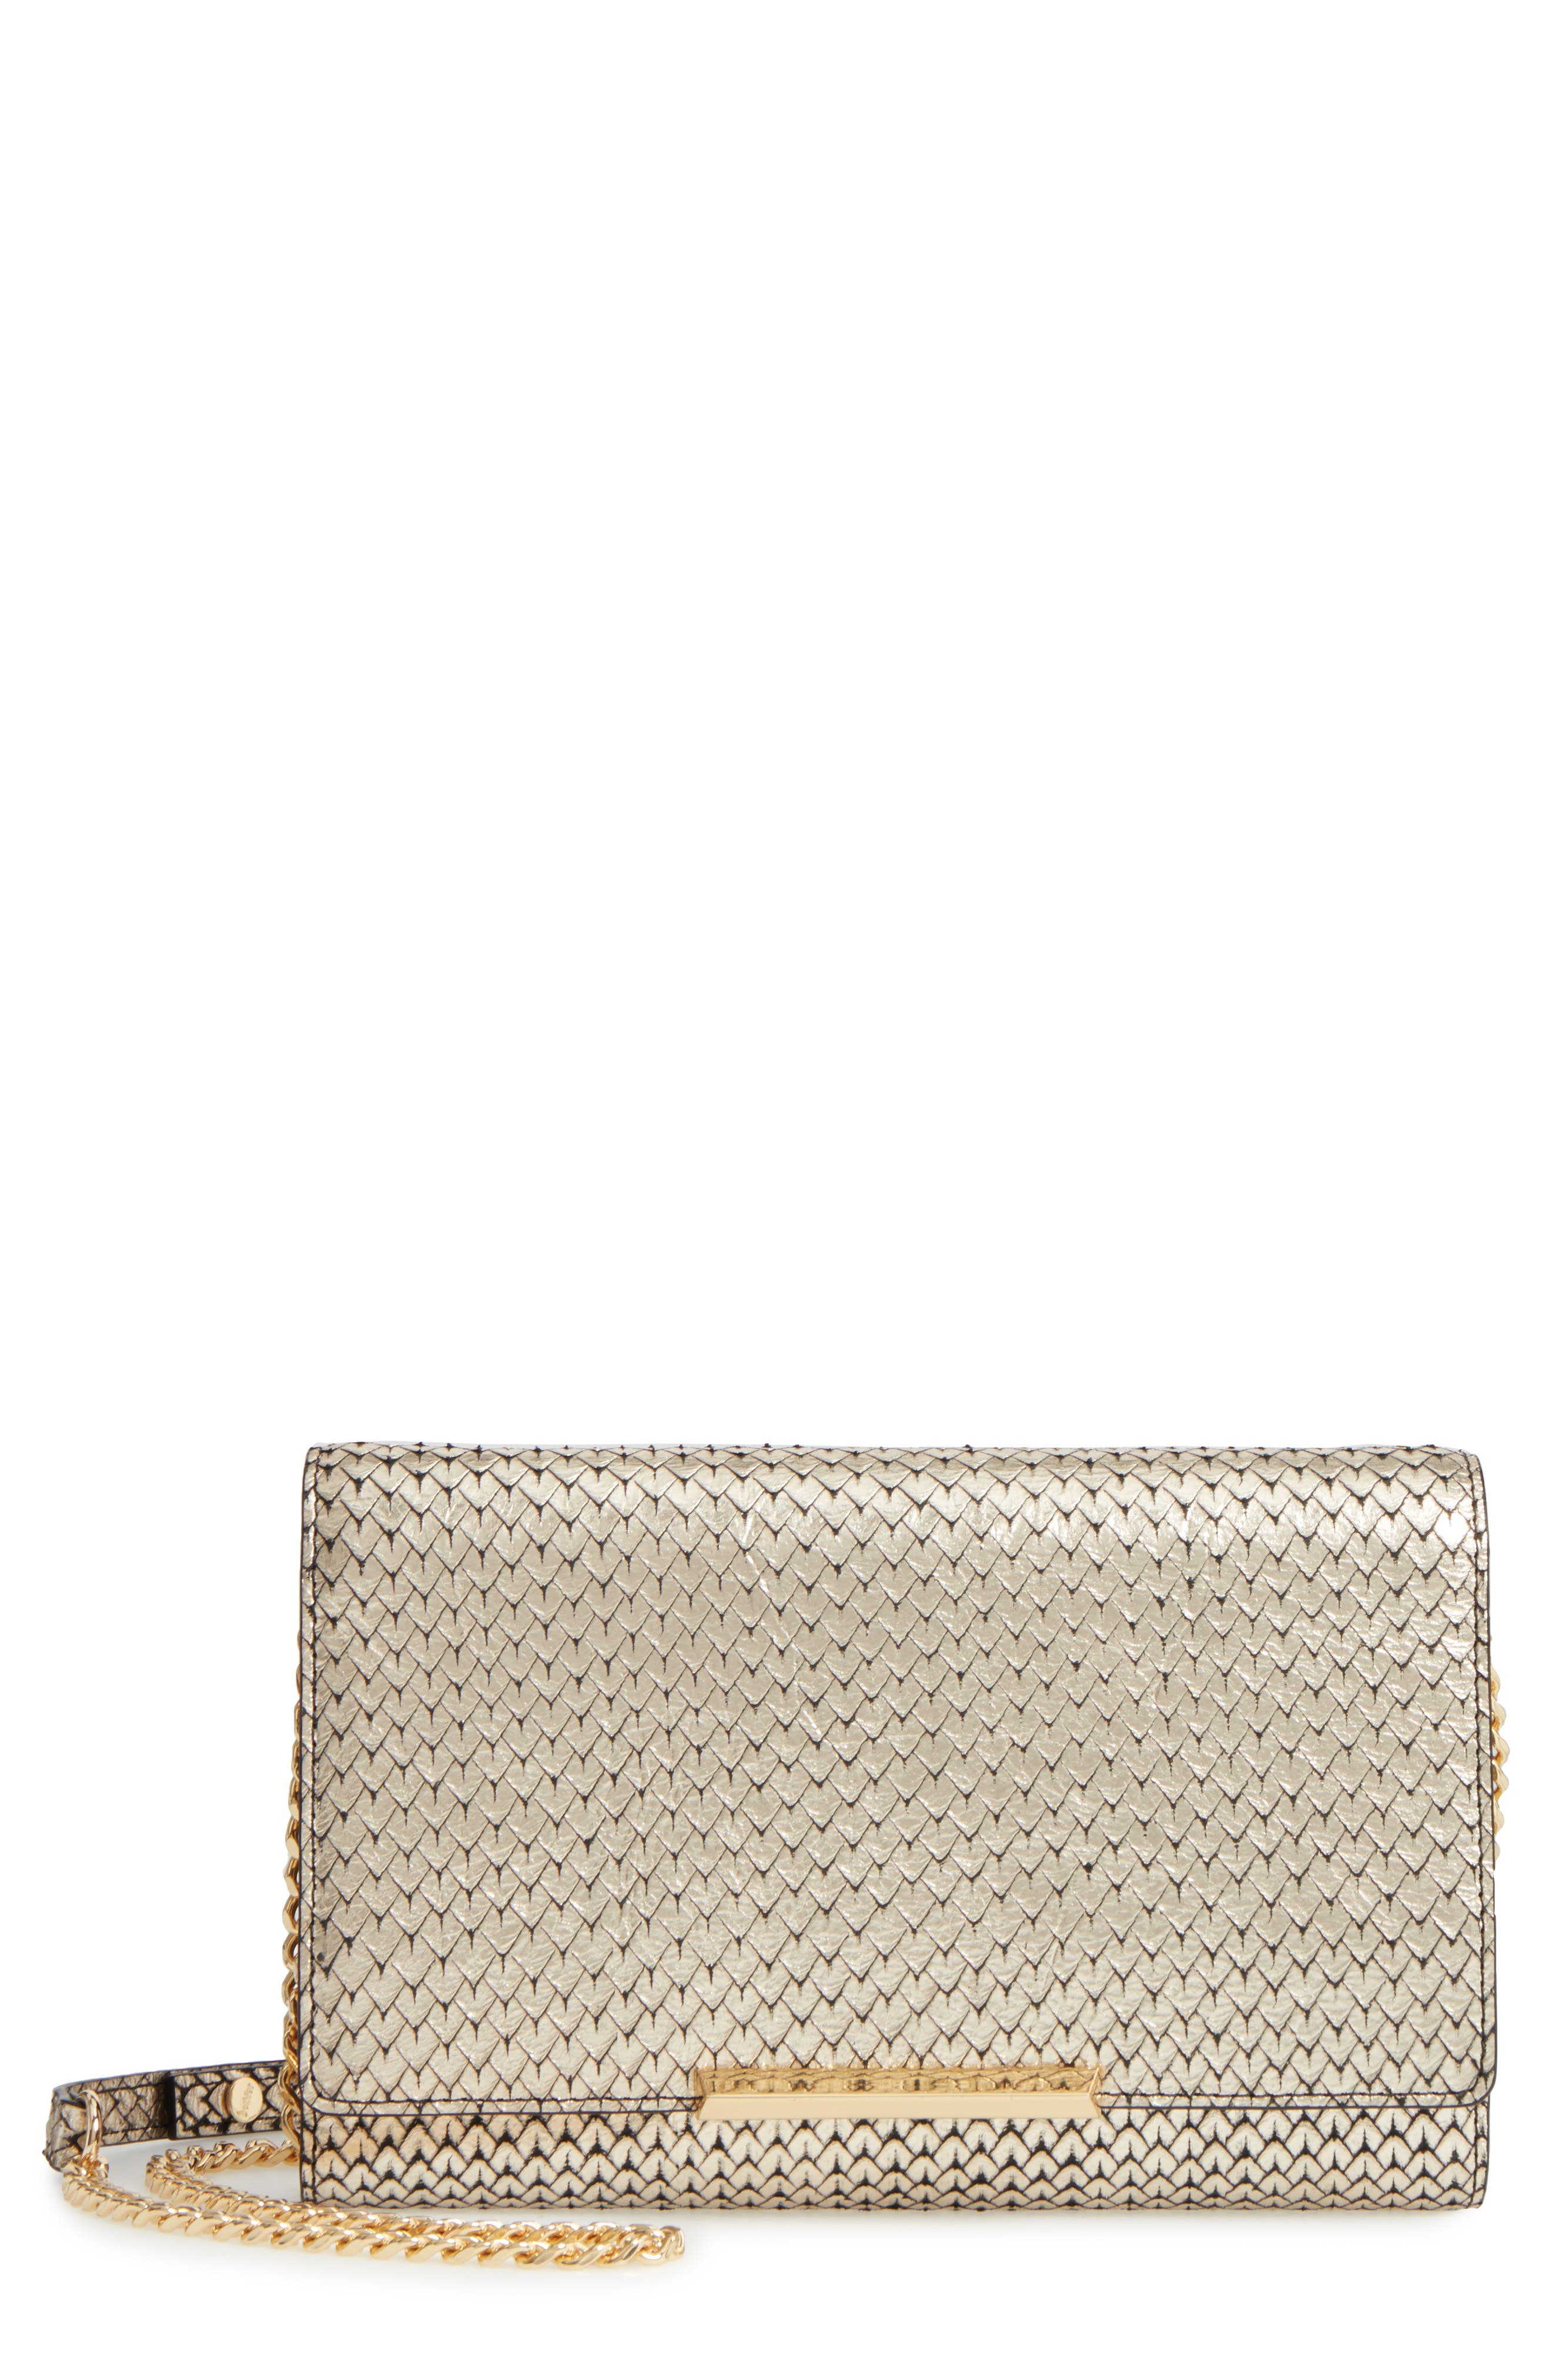 Botkier Snake Embossed Leather Wallet on a Chain